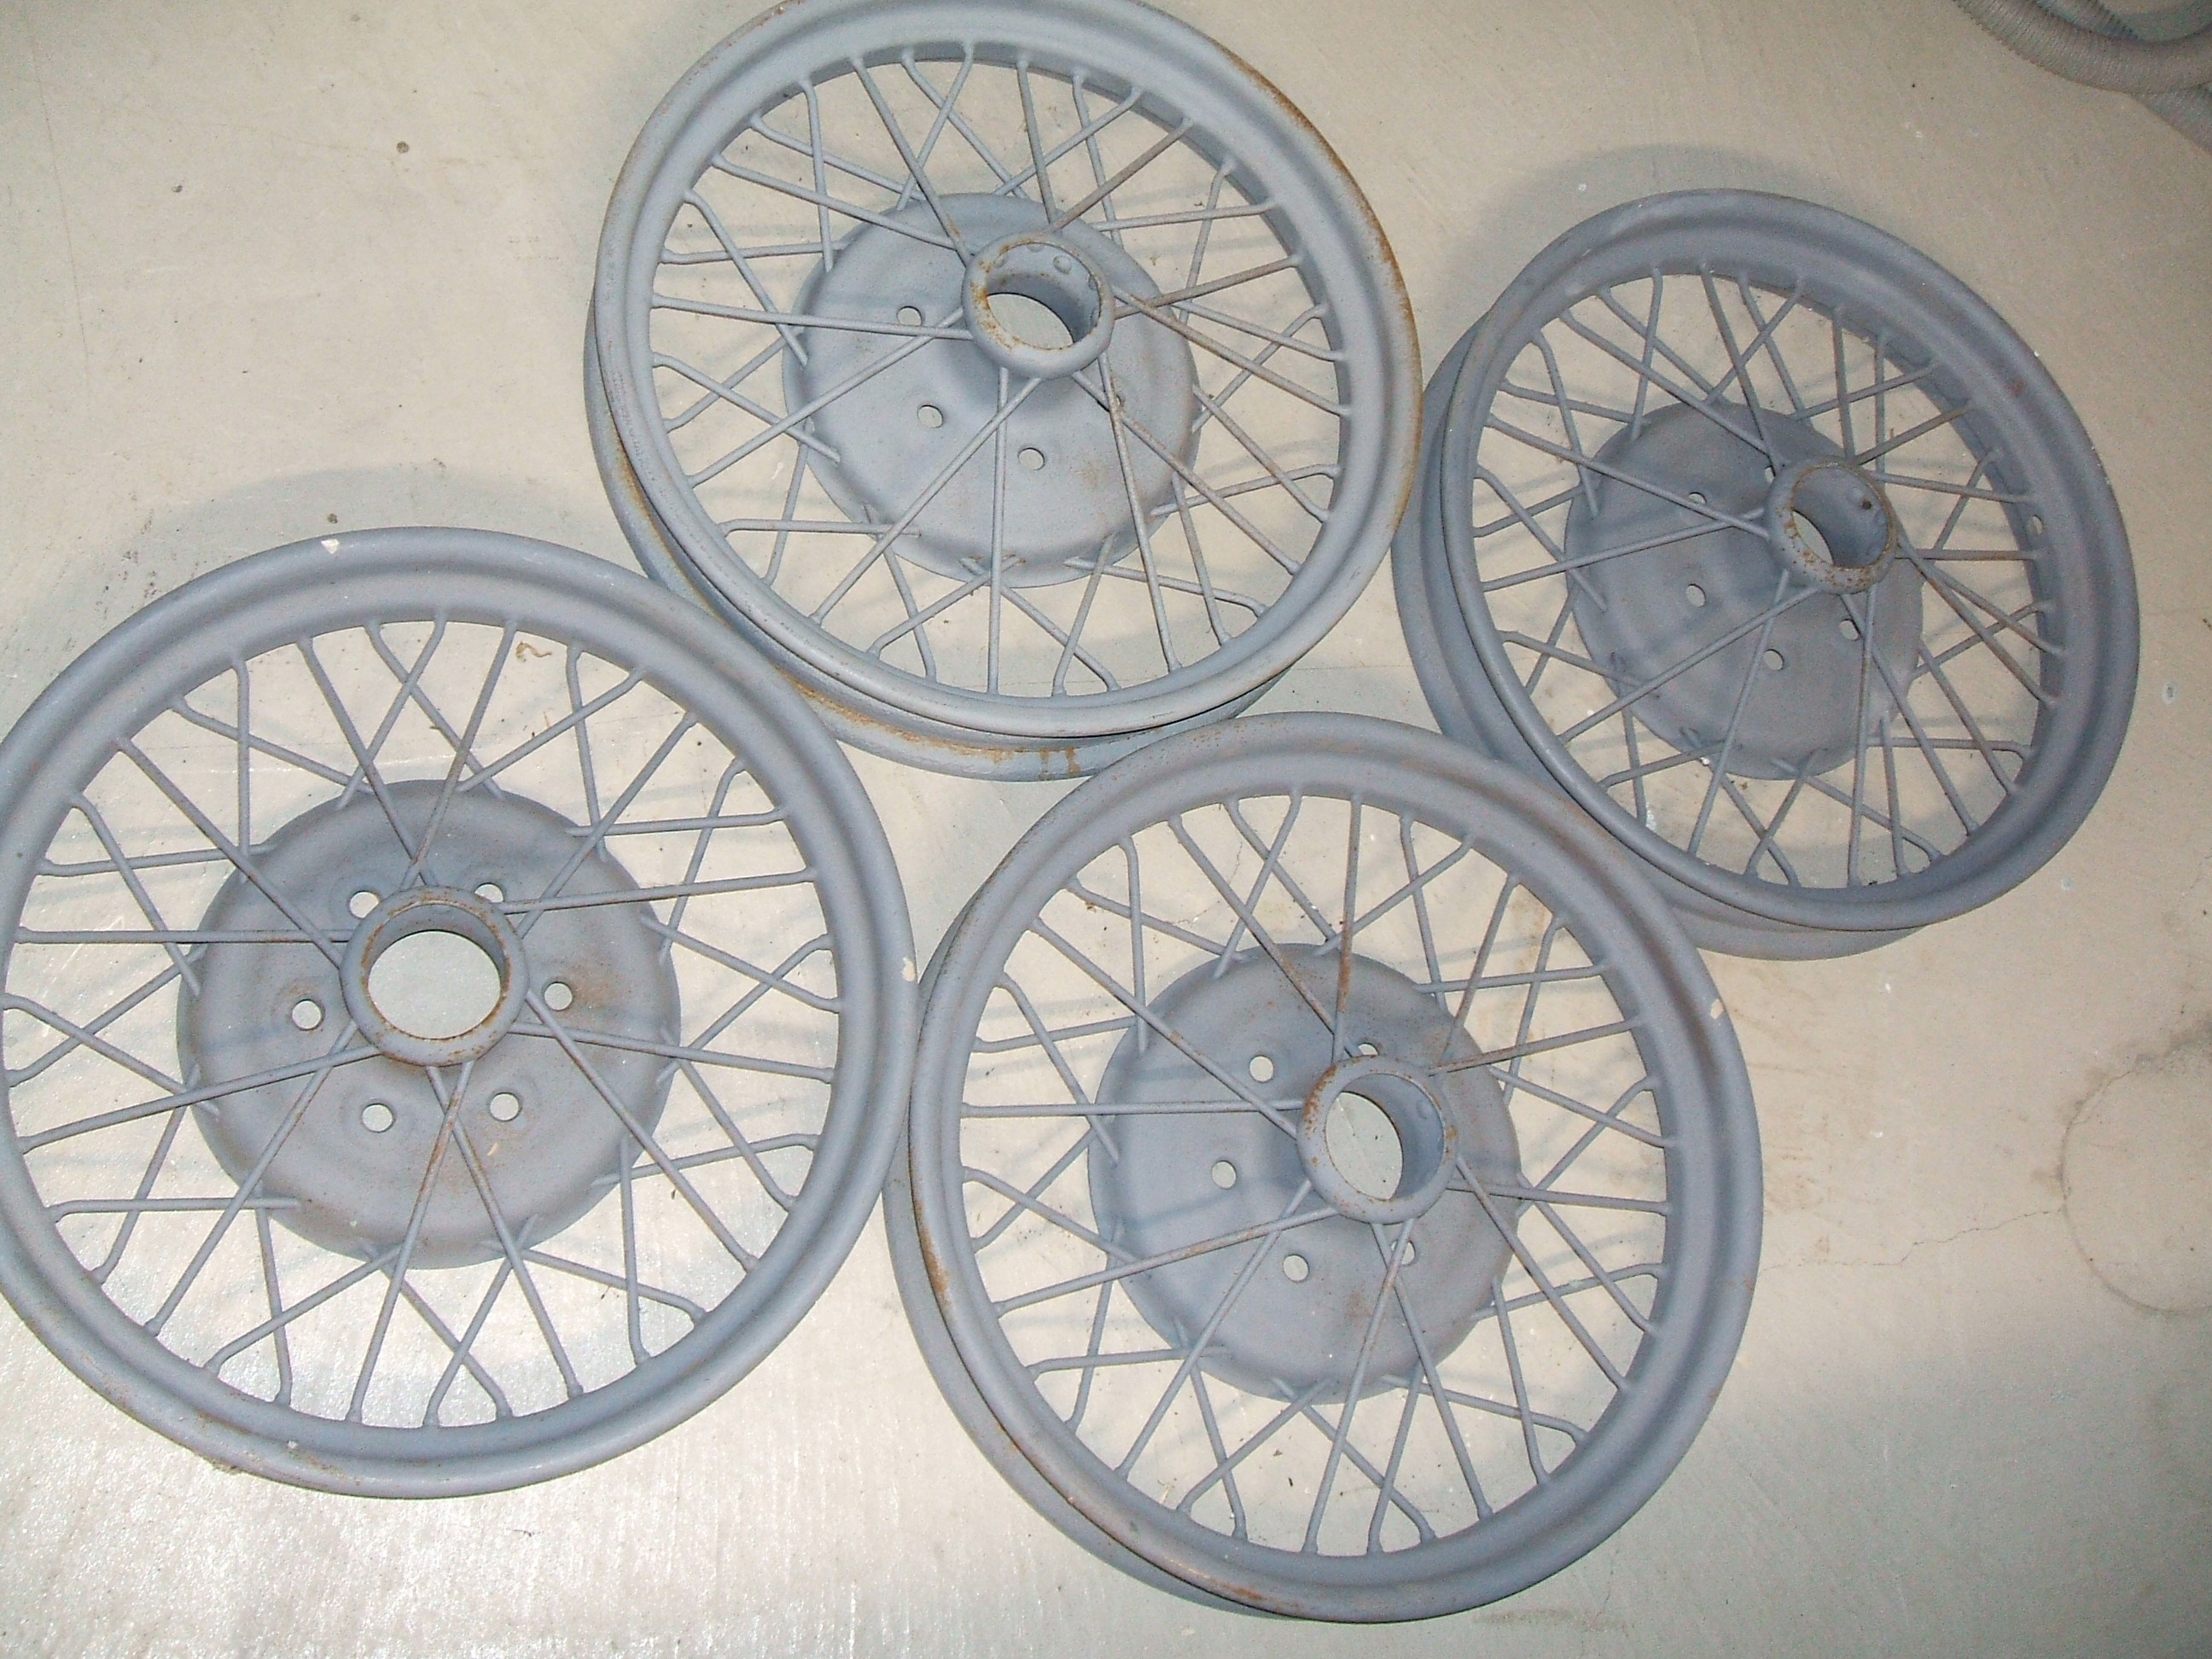 1929 Chevrolet accessory wire wheels SOLD - Cars For Sale - Antique ...